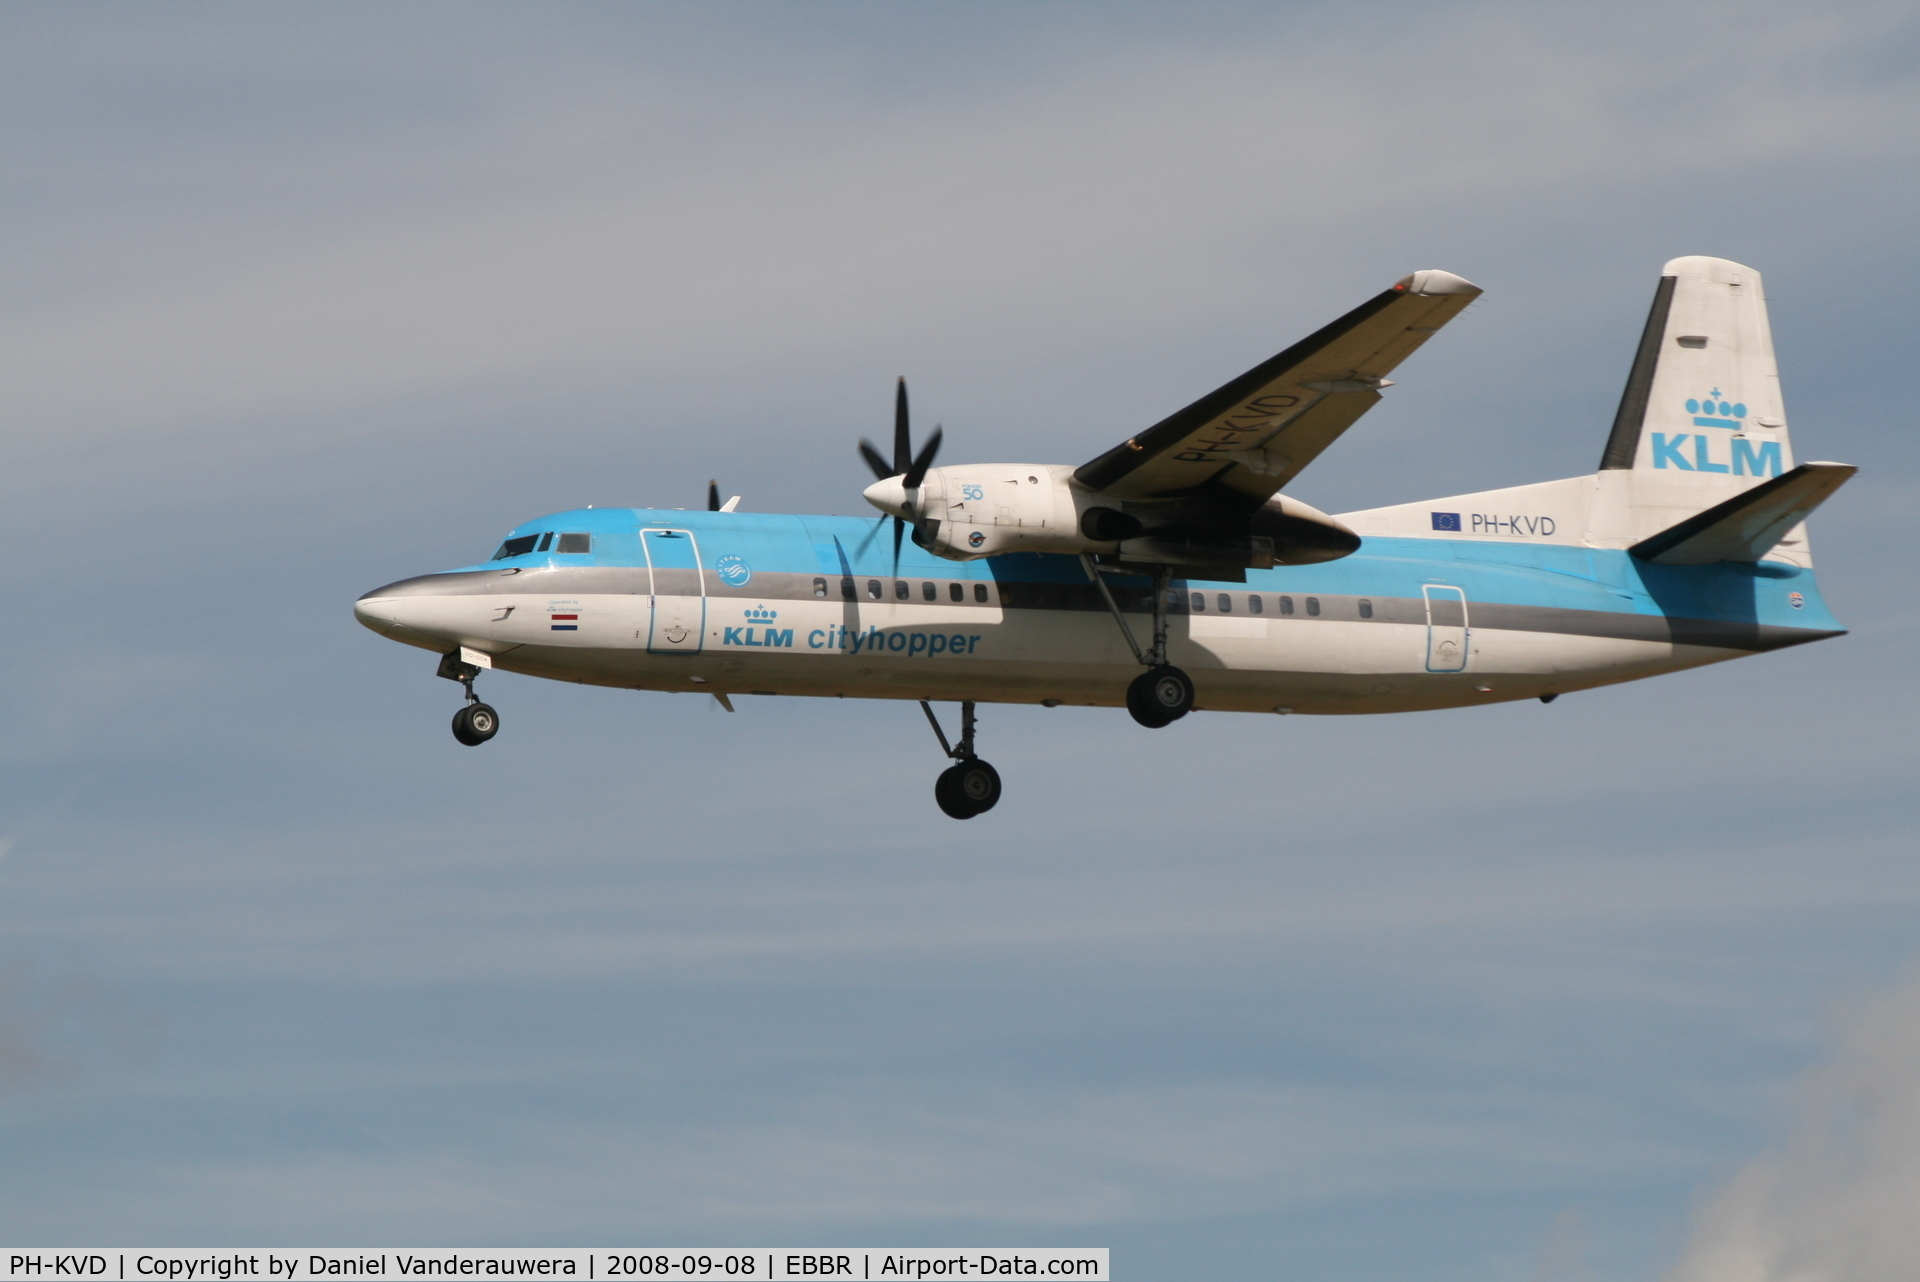 PH-KVD, 1990 Fokker 50 C/N 20197, Arrival of flight KL1725 to RWY 25L